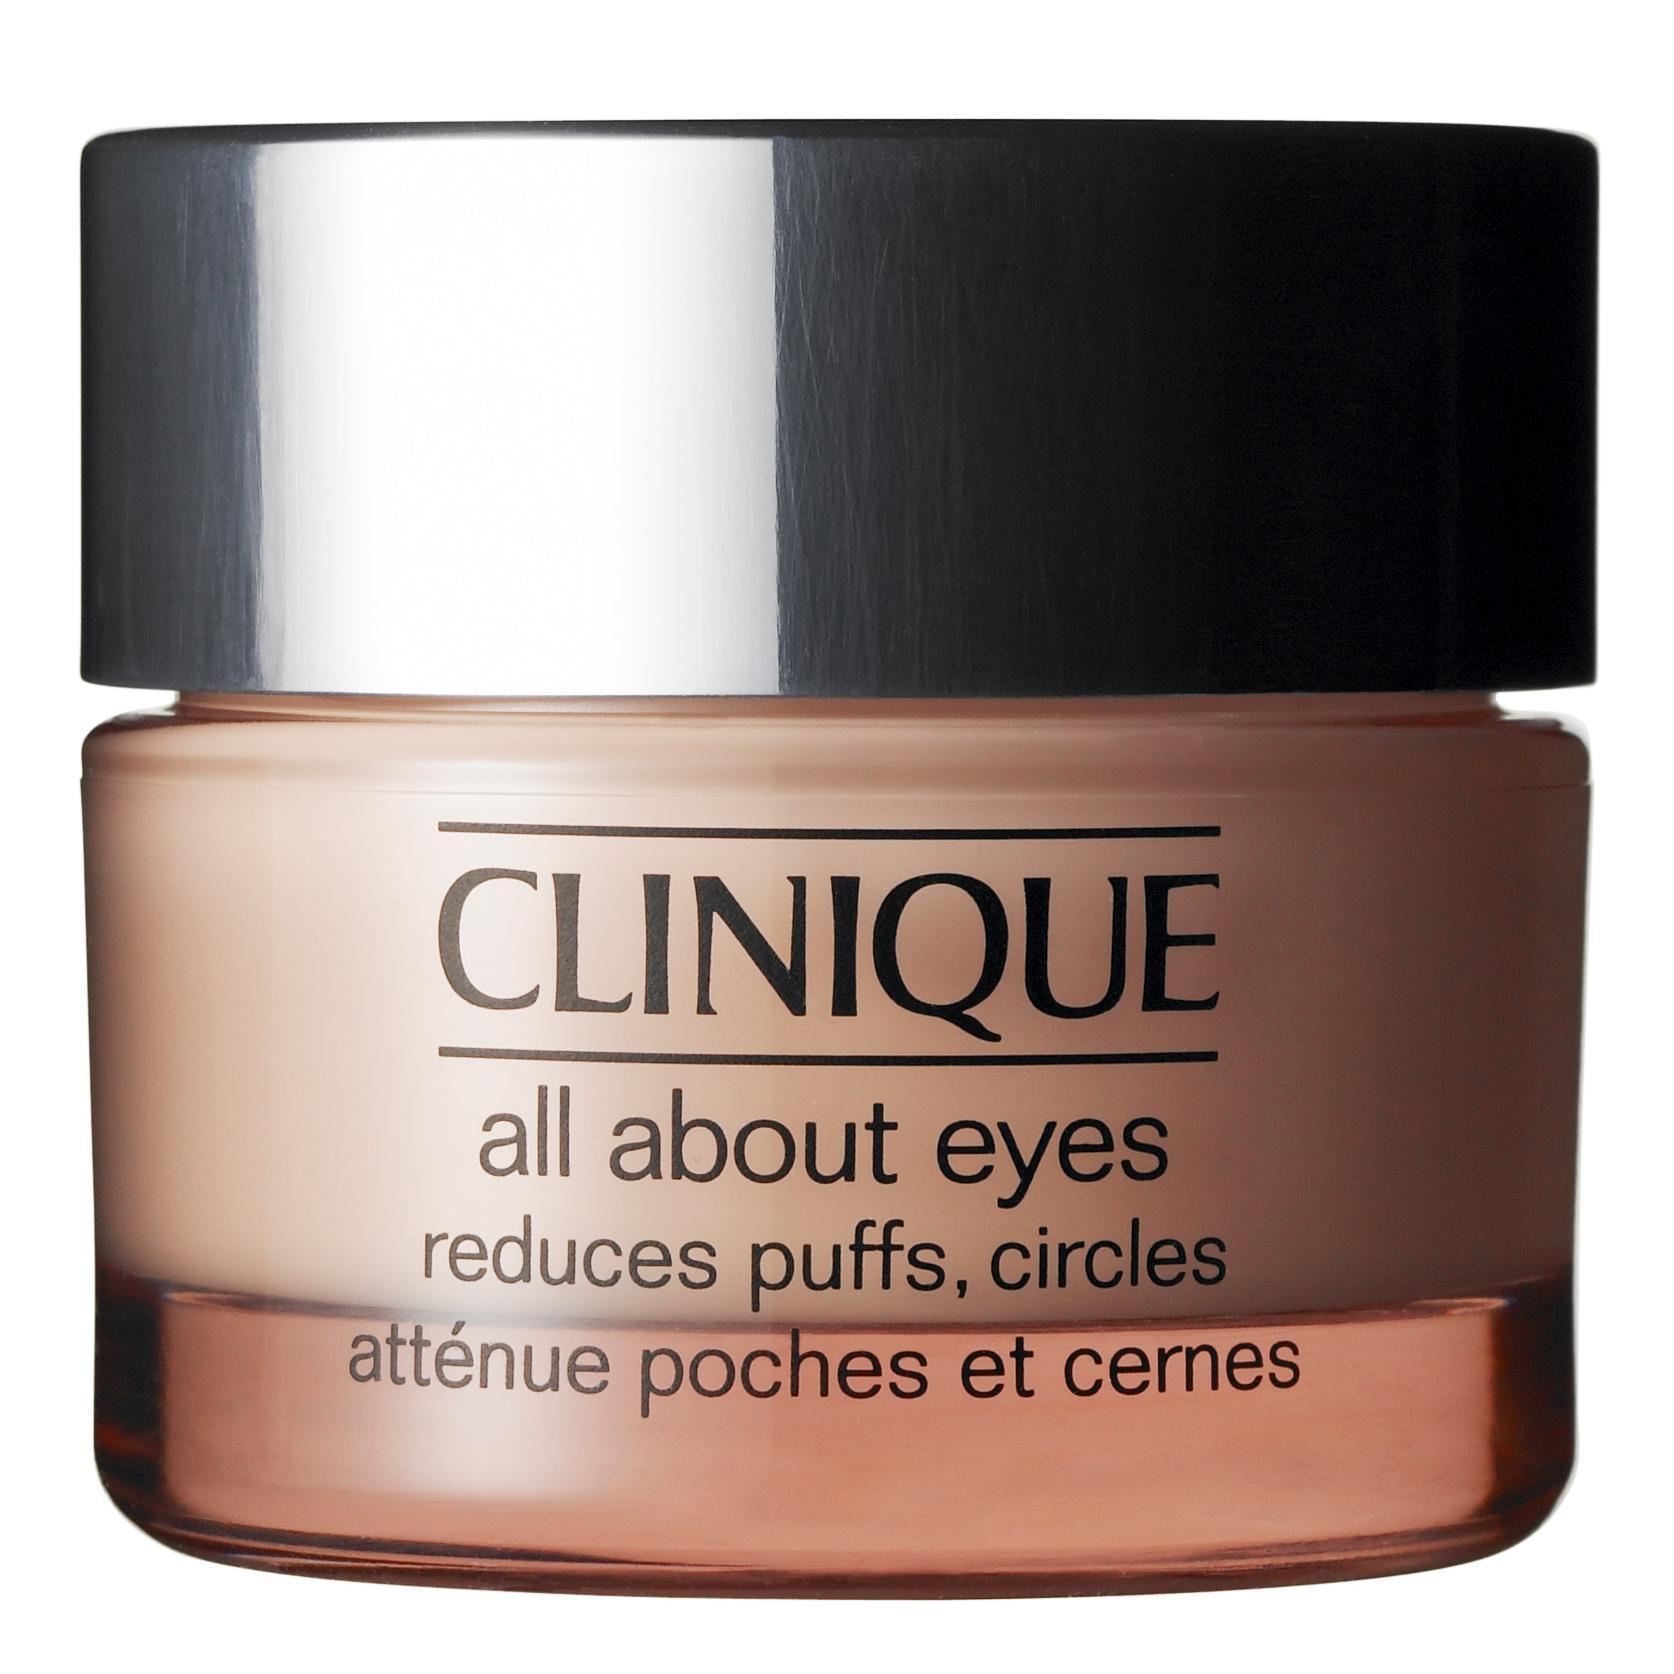 Eye cream 101 beauty cubed for Where is clinique made